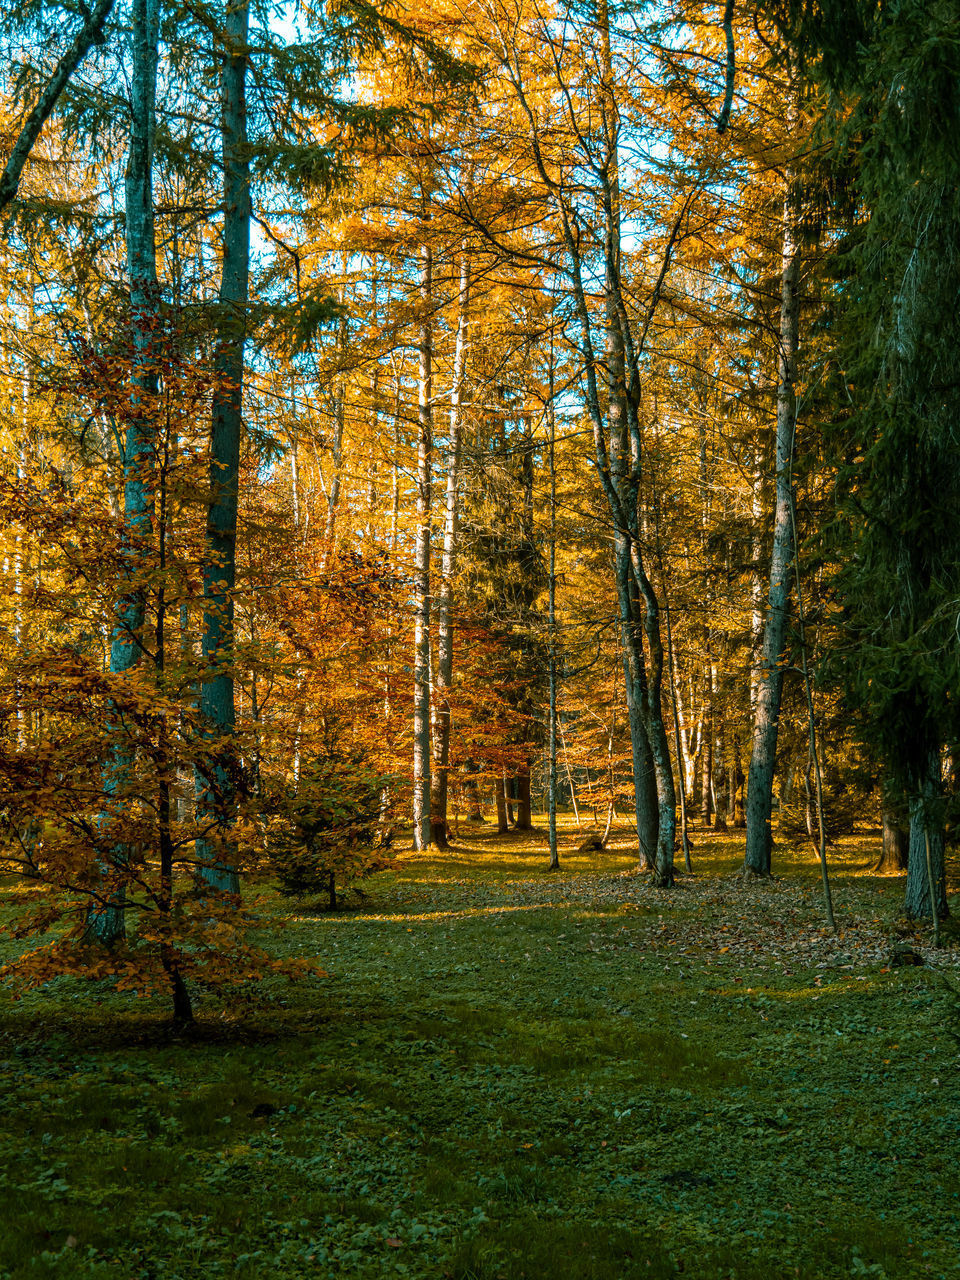 tree, plant, autumn, land, beauty in nature, forest, tranquility, change, growth, nature, scenics - nature, day, tranquil scene, non-urban scene, woodland, no people, green color, landscape, grass, idyllic, outdoors, autumn collection